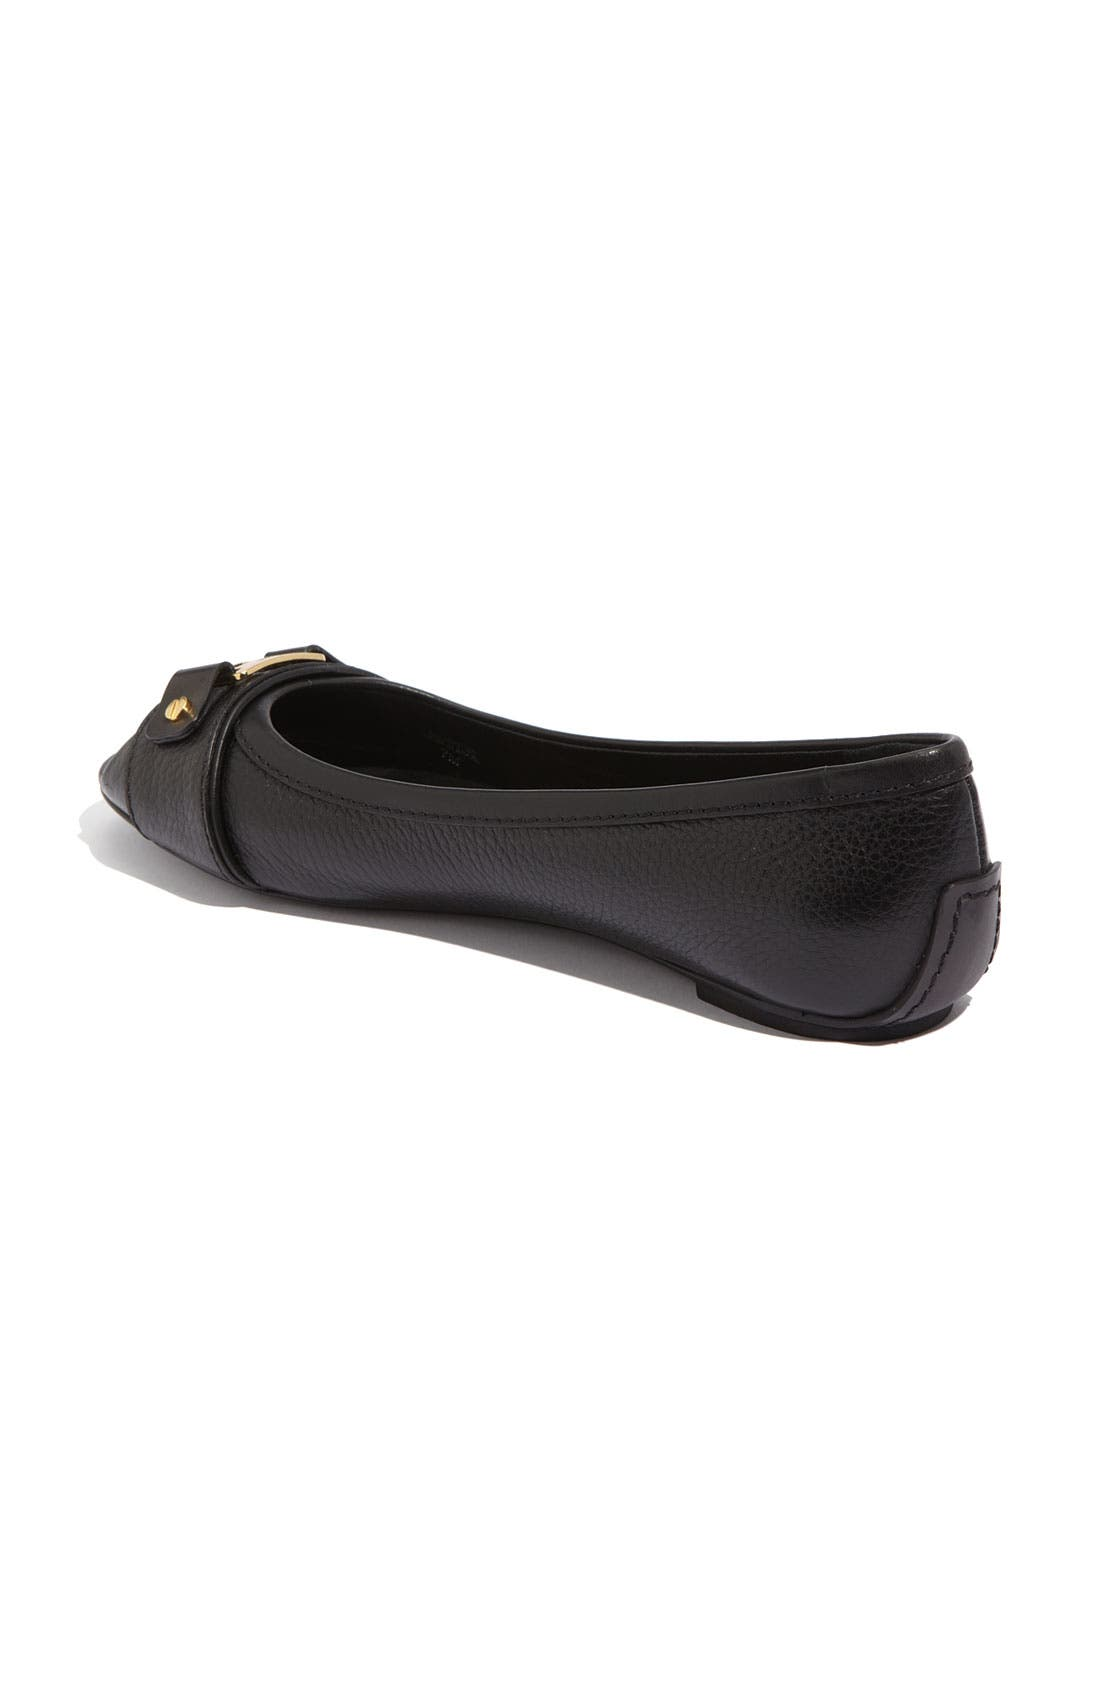 Alternate Image 2  - Tory Burch 'Clines' Ballet Flat